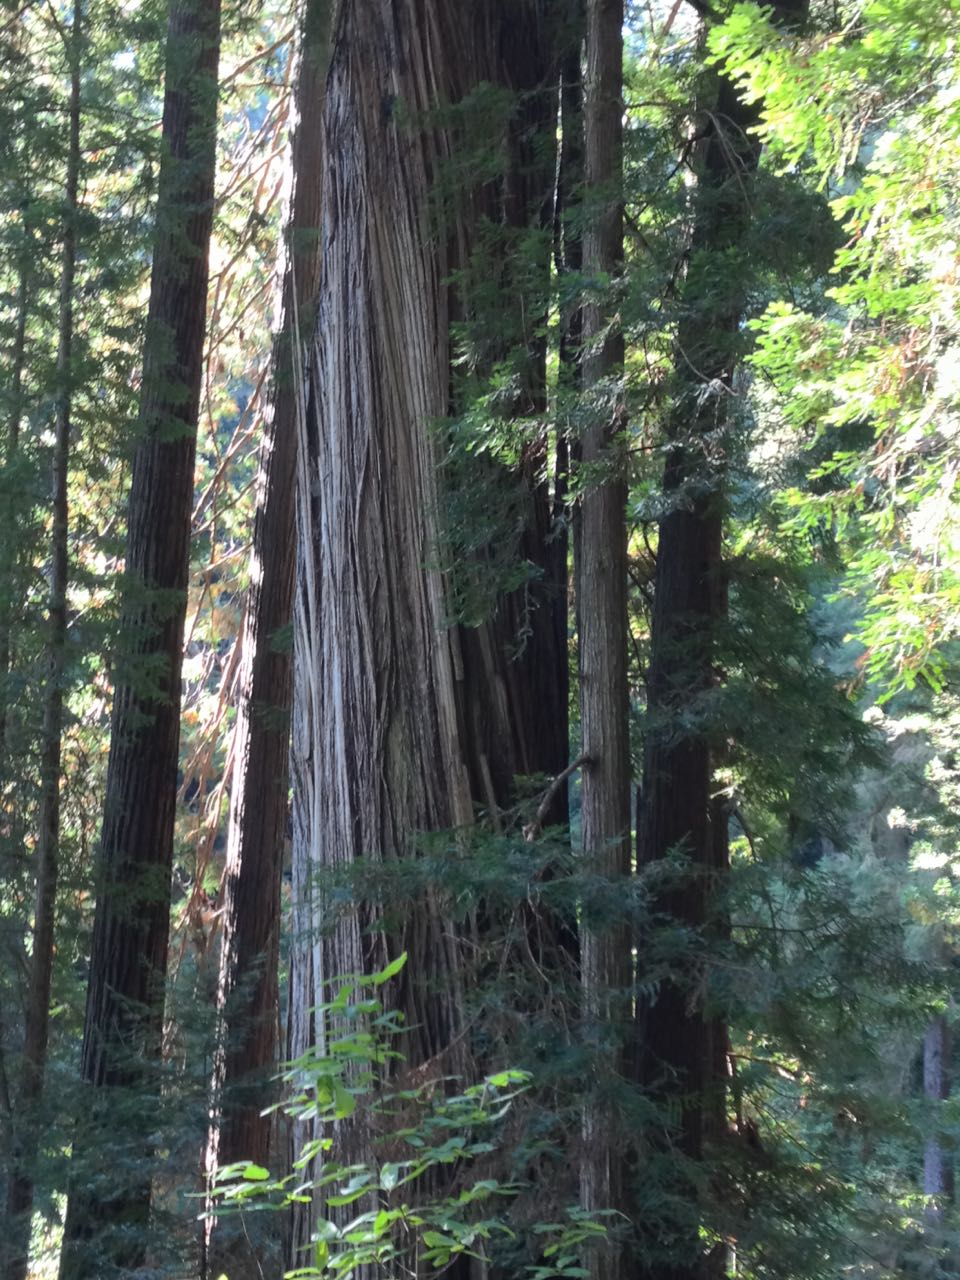 Redwoods 2017 10 01 174 Of 244